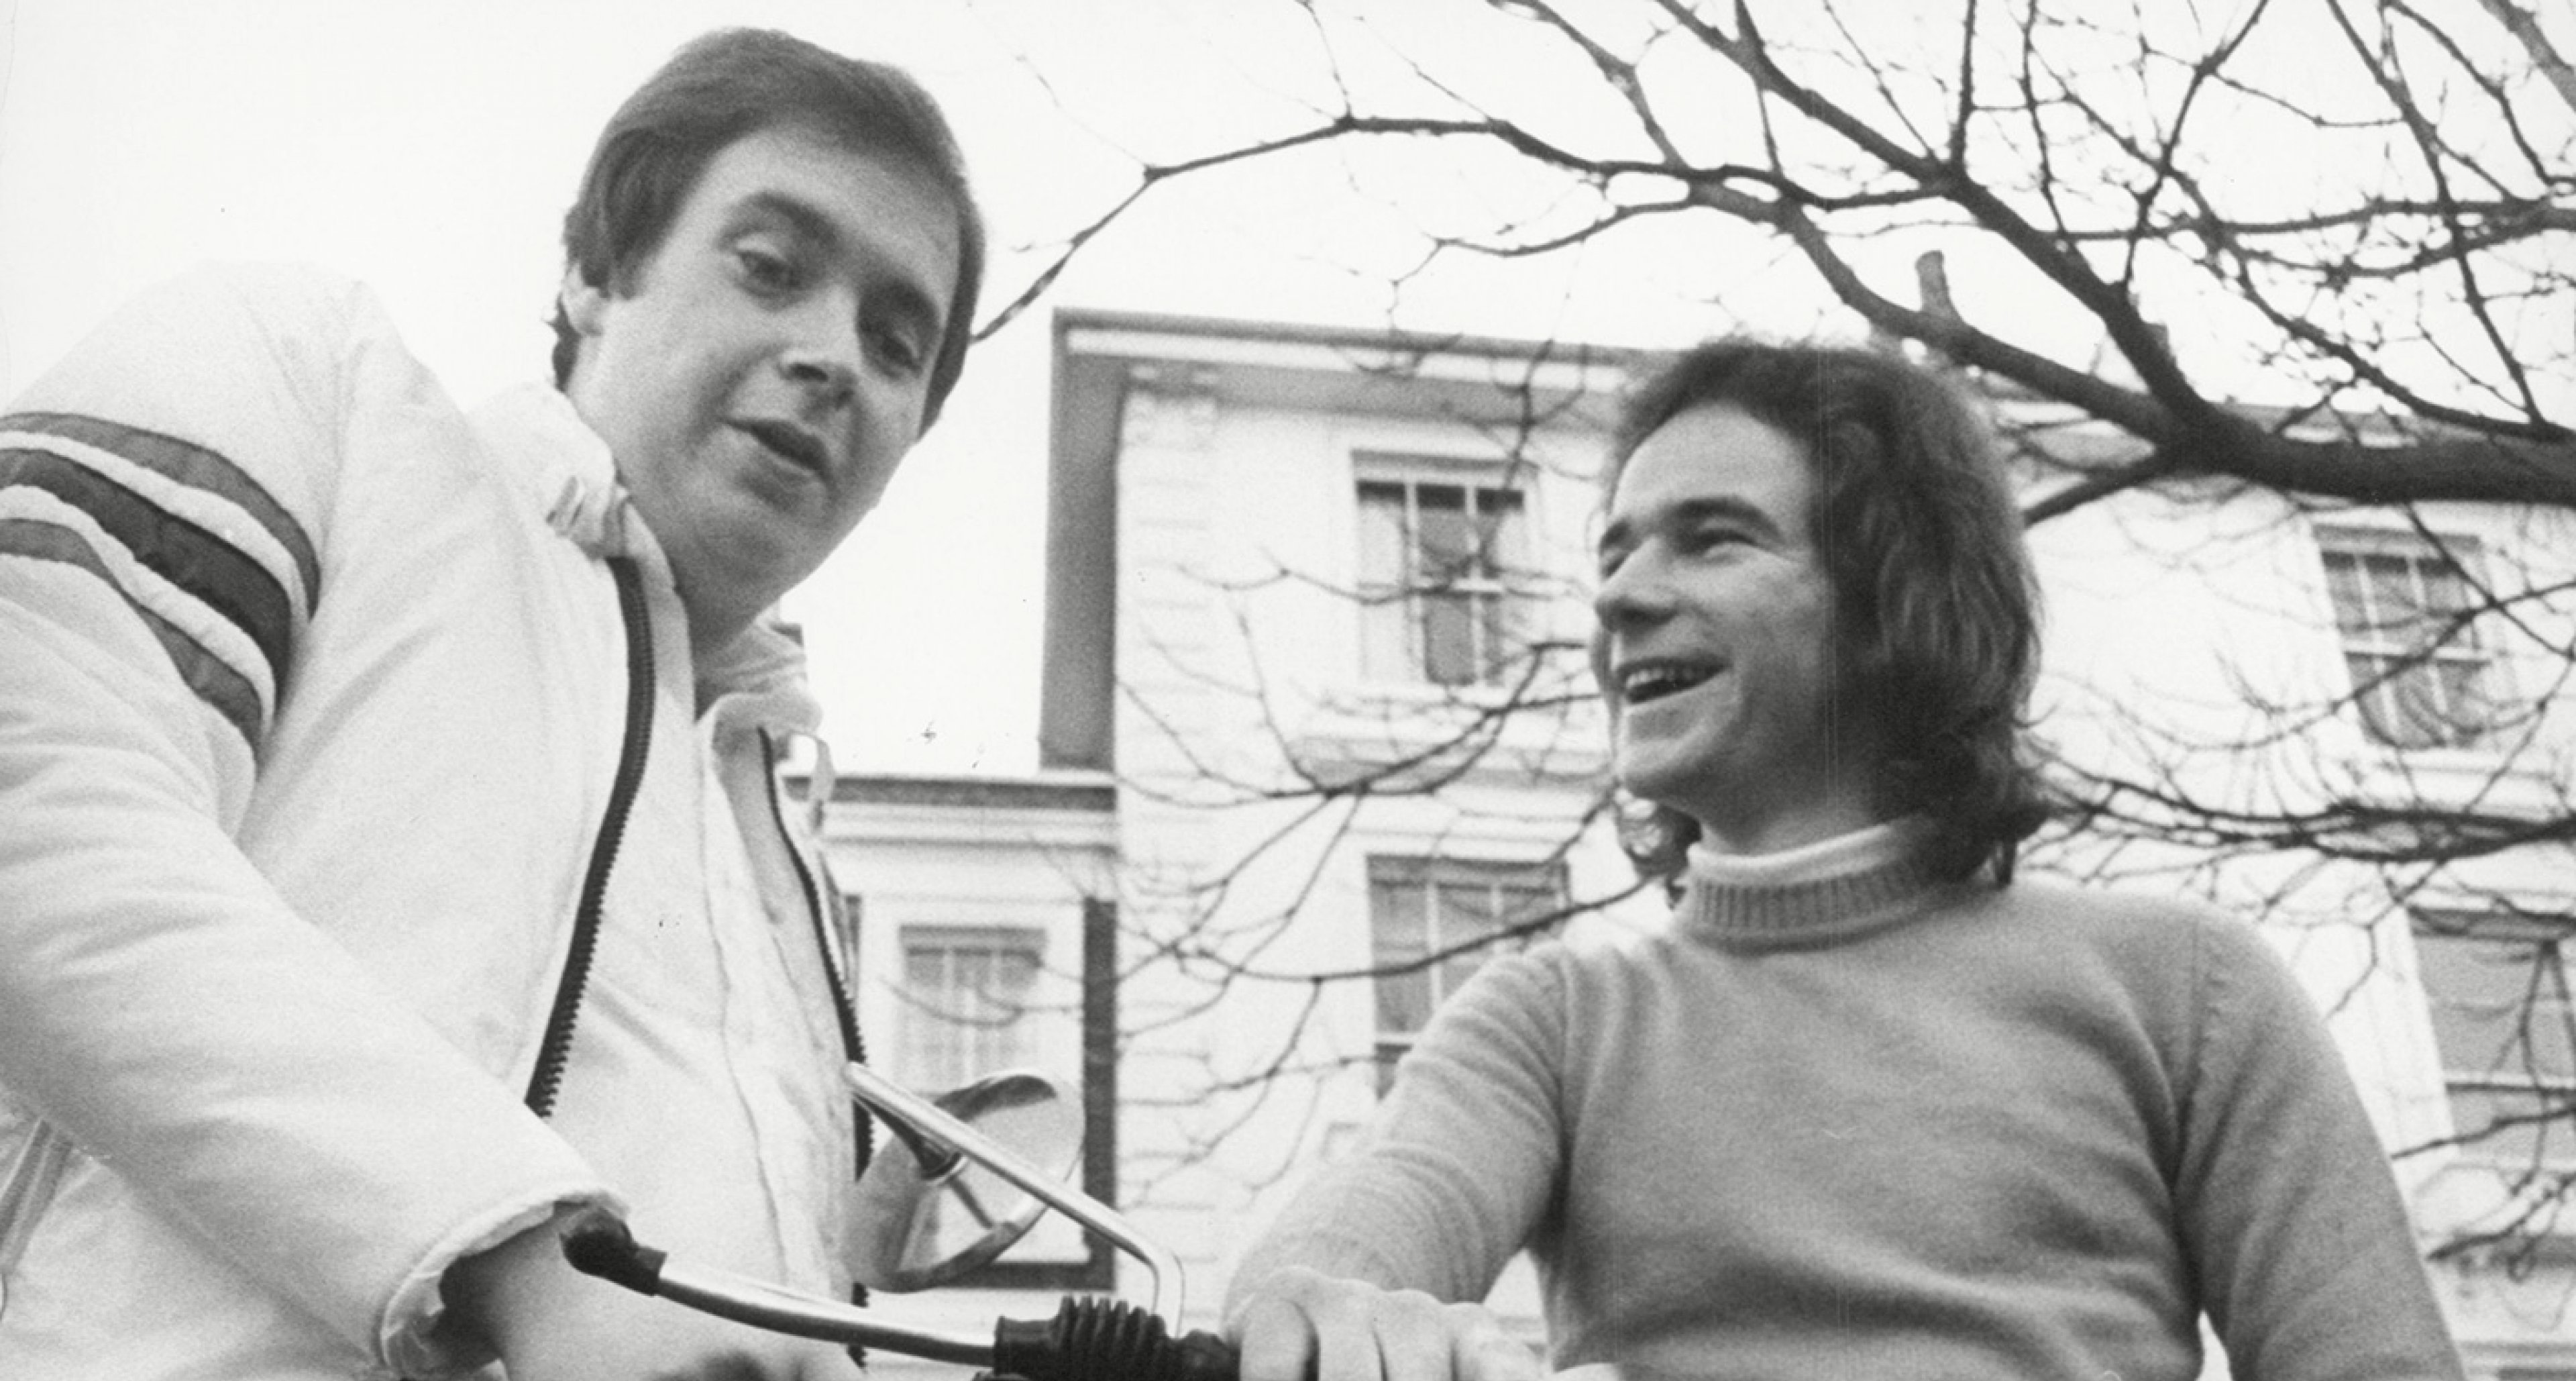 Motorcycling legends gives his friend Lord Hesketh some tips on learning to ride